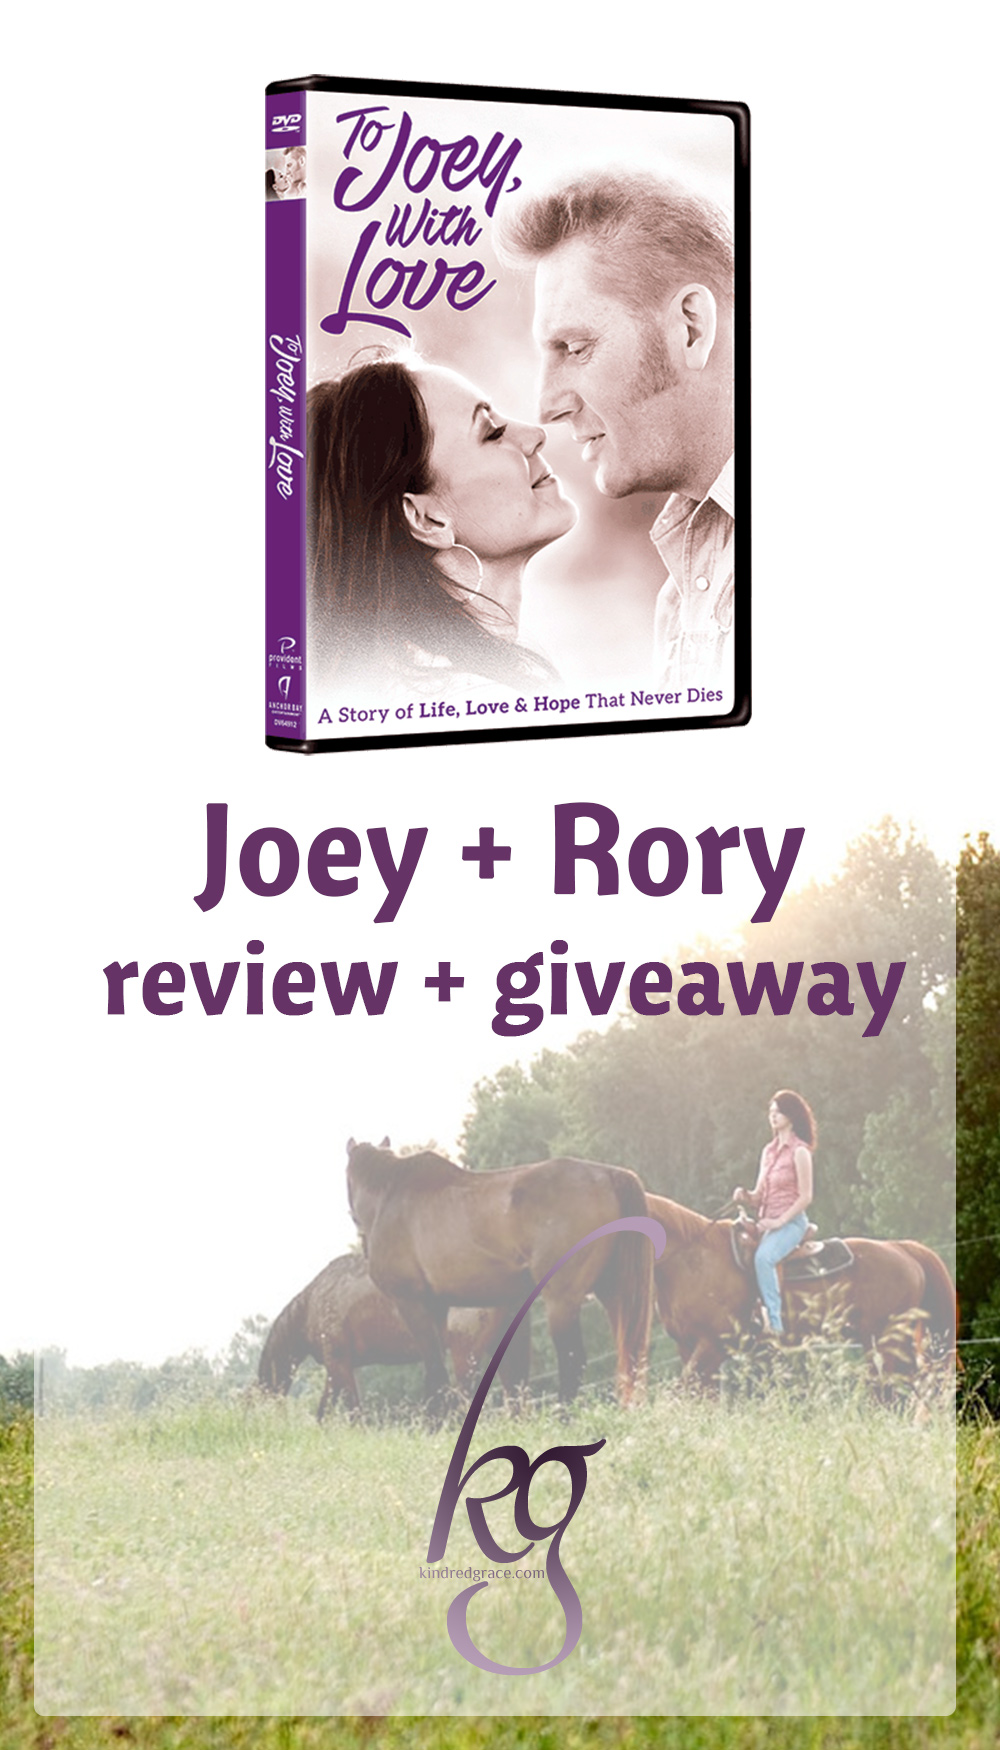 "It's not every day that I watch a movie already knowing how it will end. That's why Rory's words at the beginning of the film ""To Joey, With Love"" captured my attention: We believed God would give us a great story... And He did. (Enter to win your own copy of the DVD!)"